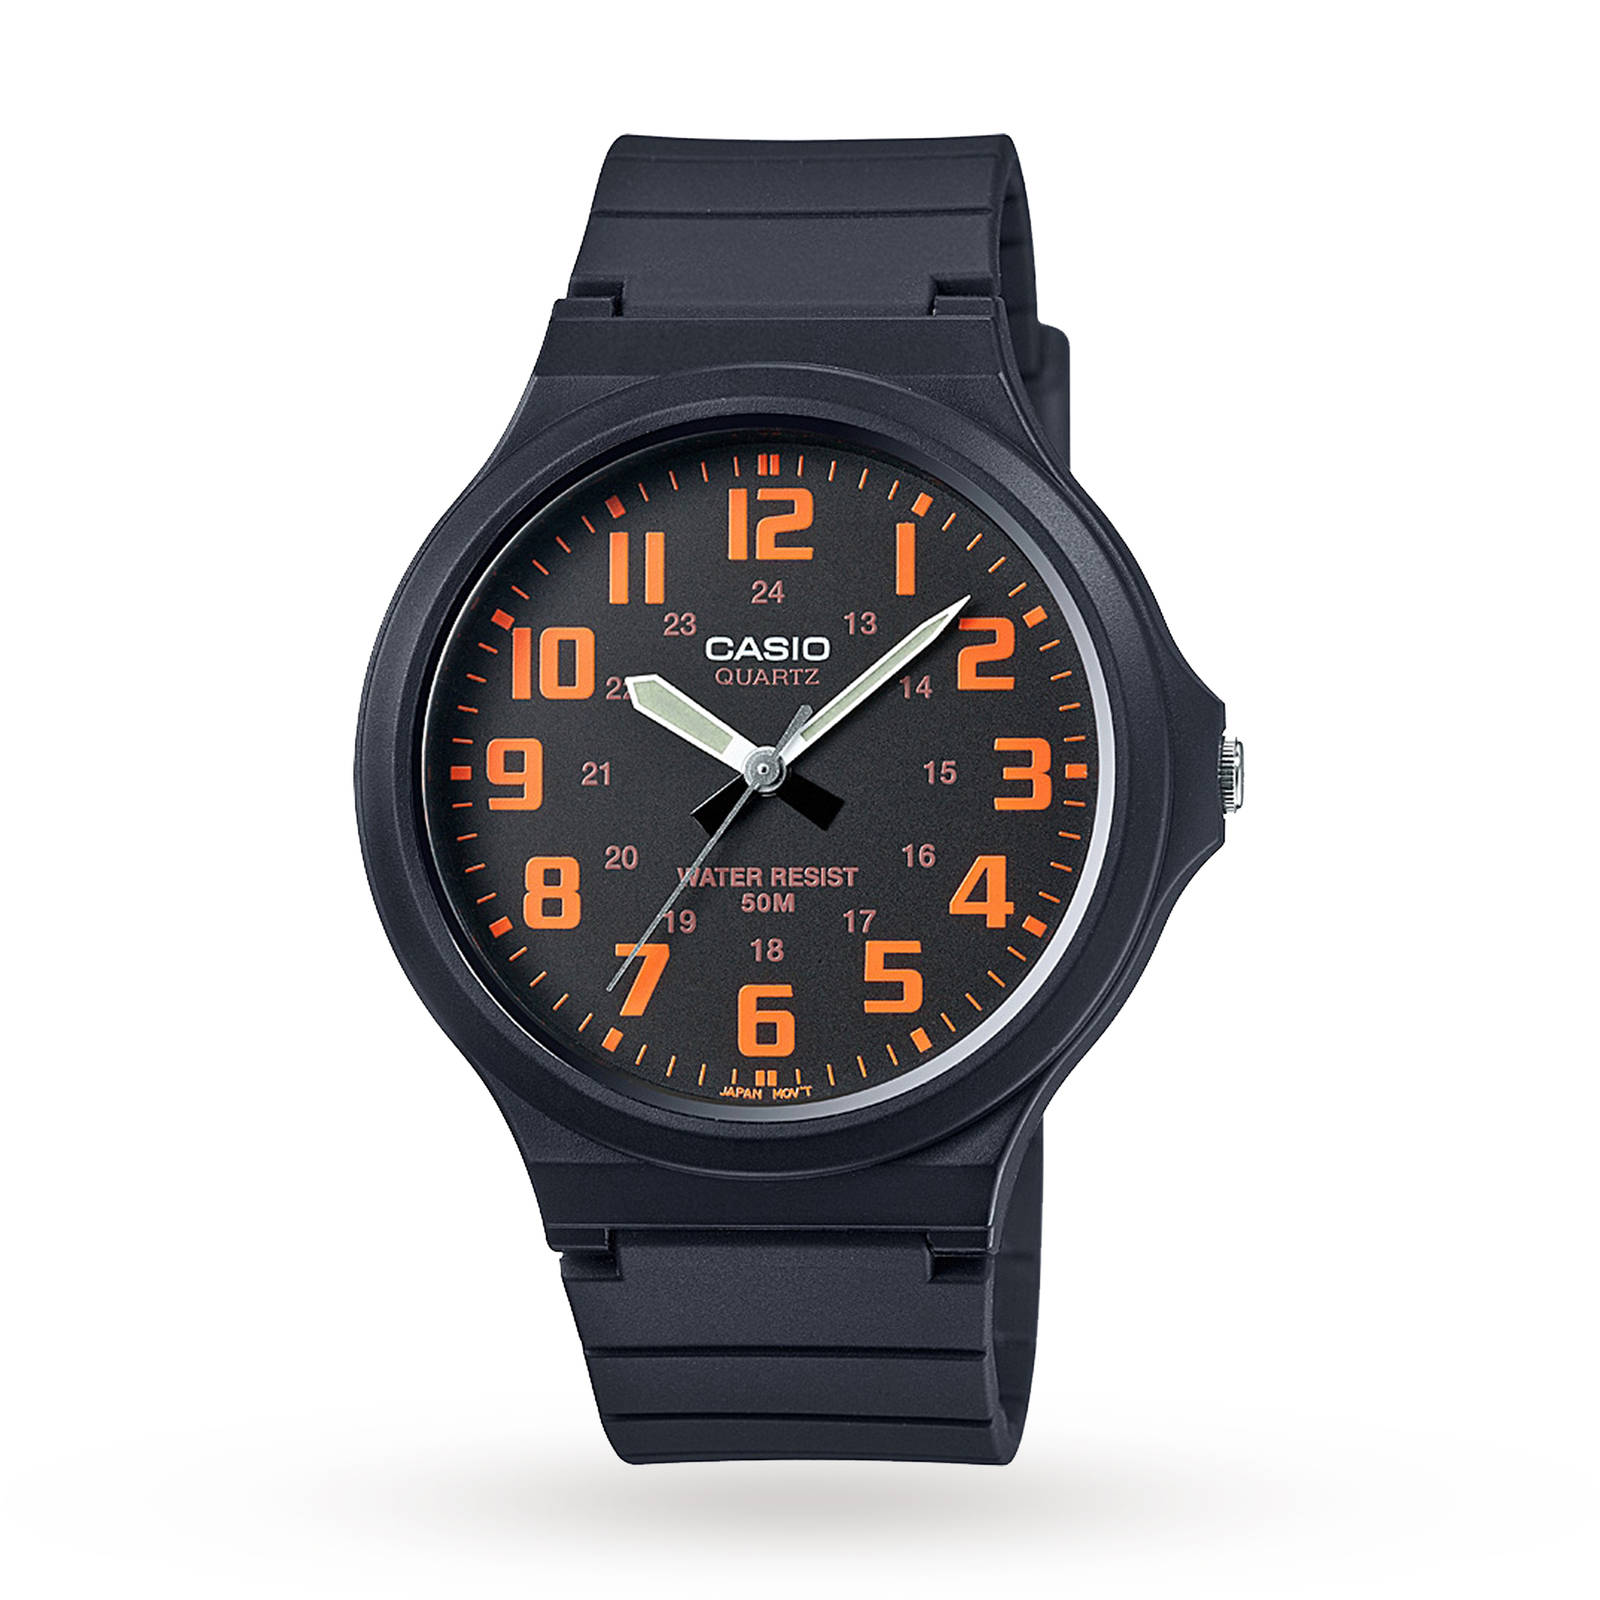 minimal featuring leather timepieces blackn watches border bigger with laud black minimalist strap dial products case unisex watch